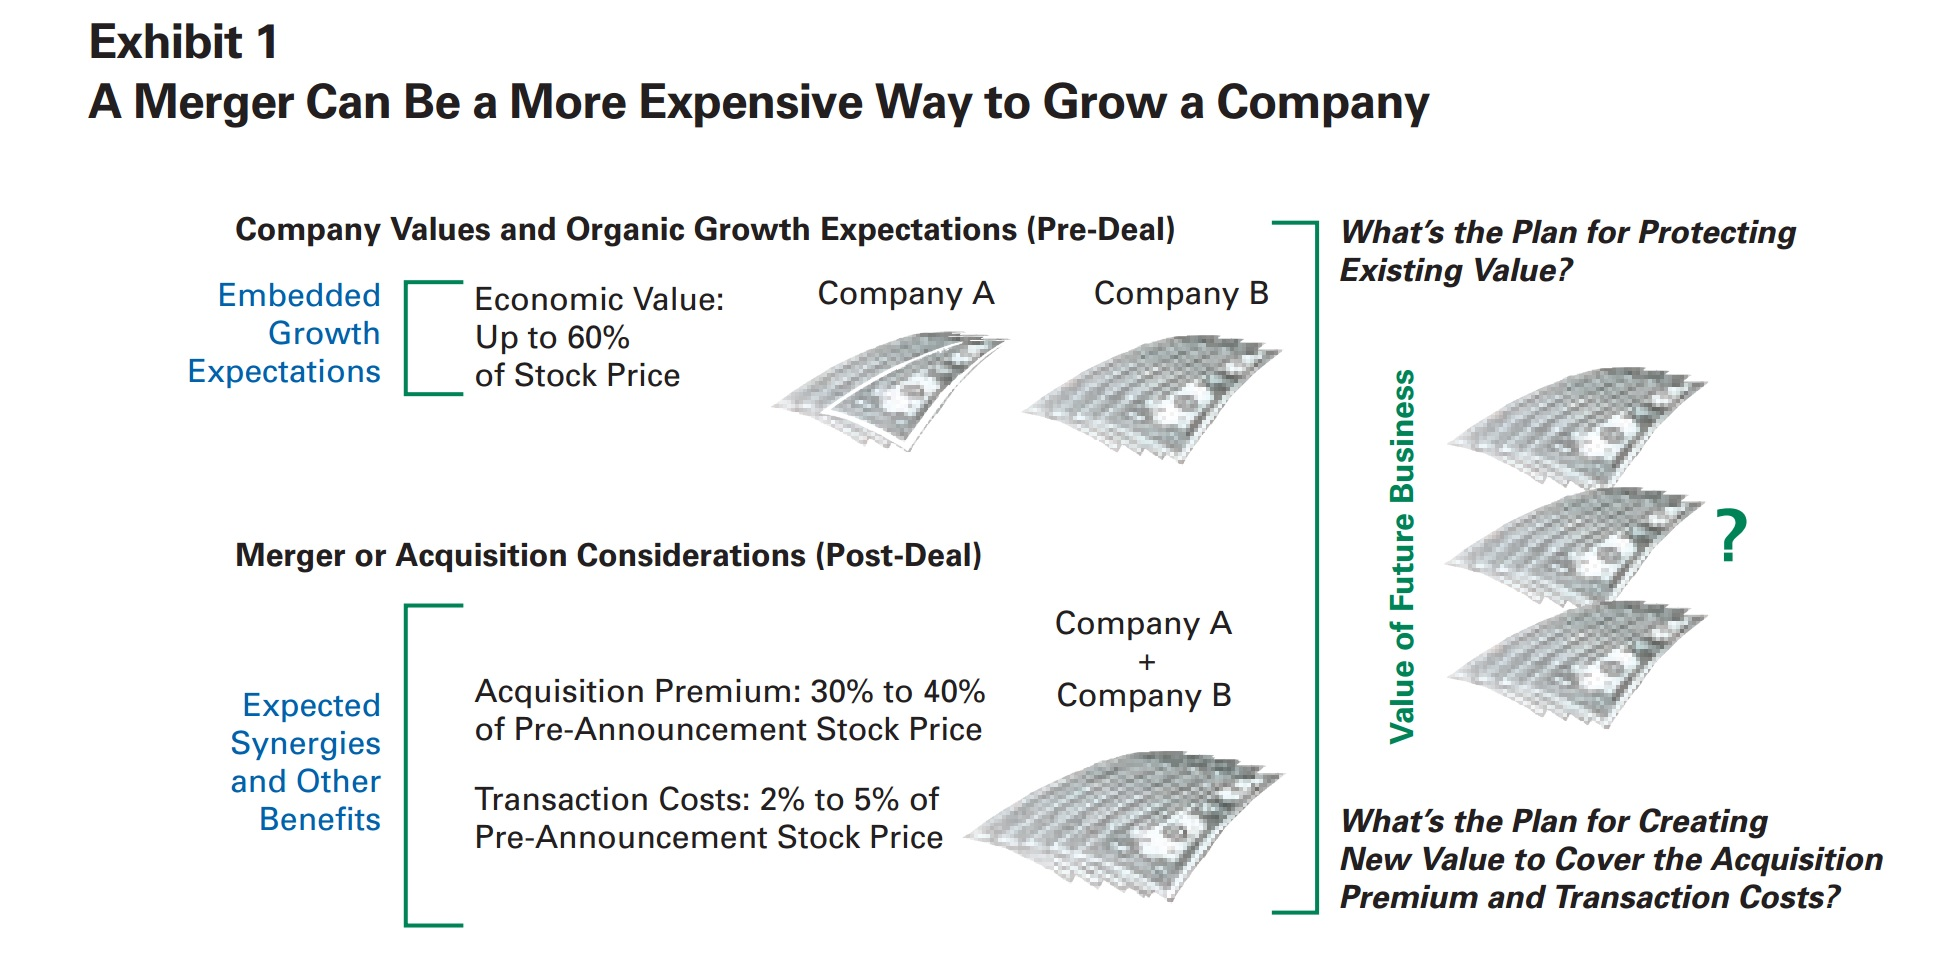 A Merger Can Be a More Expensive Way to Grow a Company